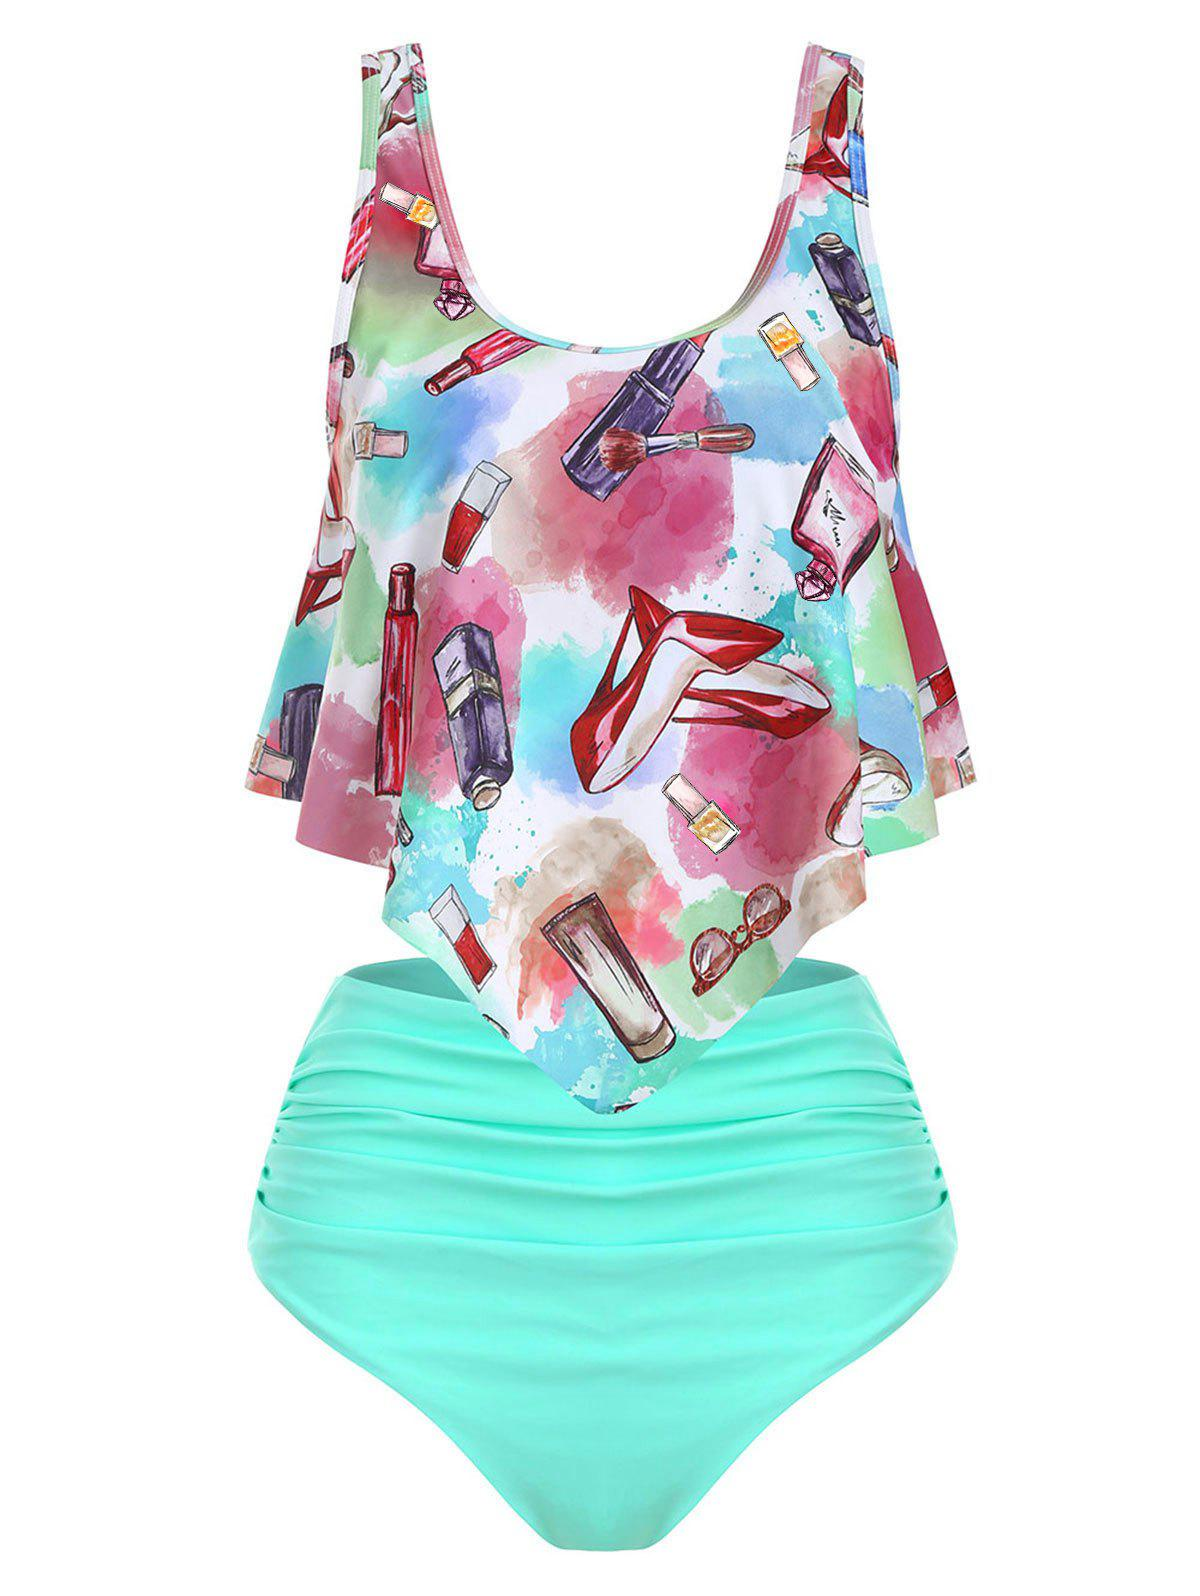 Fashion Accessories Makeup Print Ruched Tankini Set Fashion Accessories Makeup Print Ruched Tankini Set